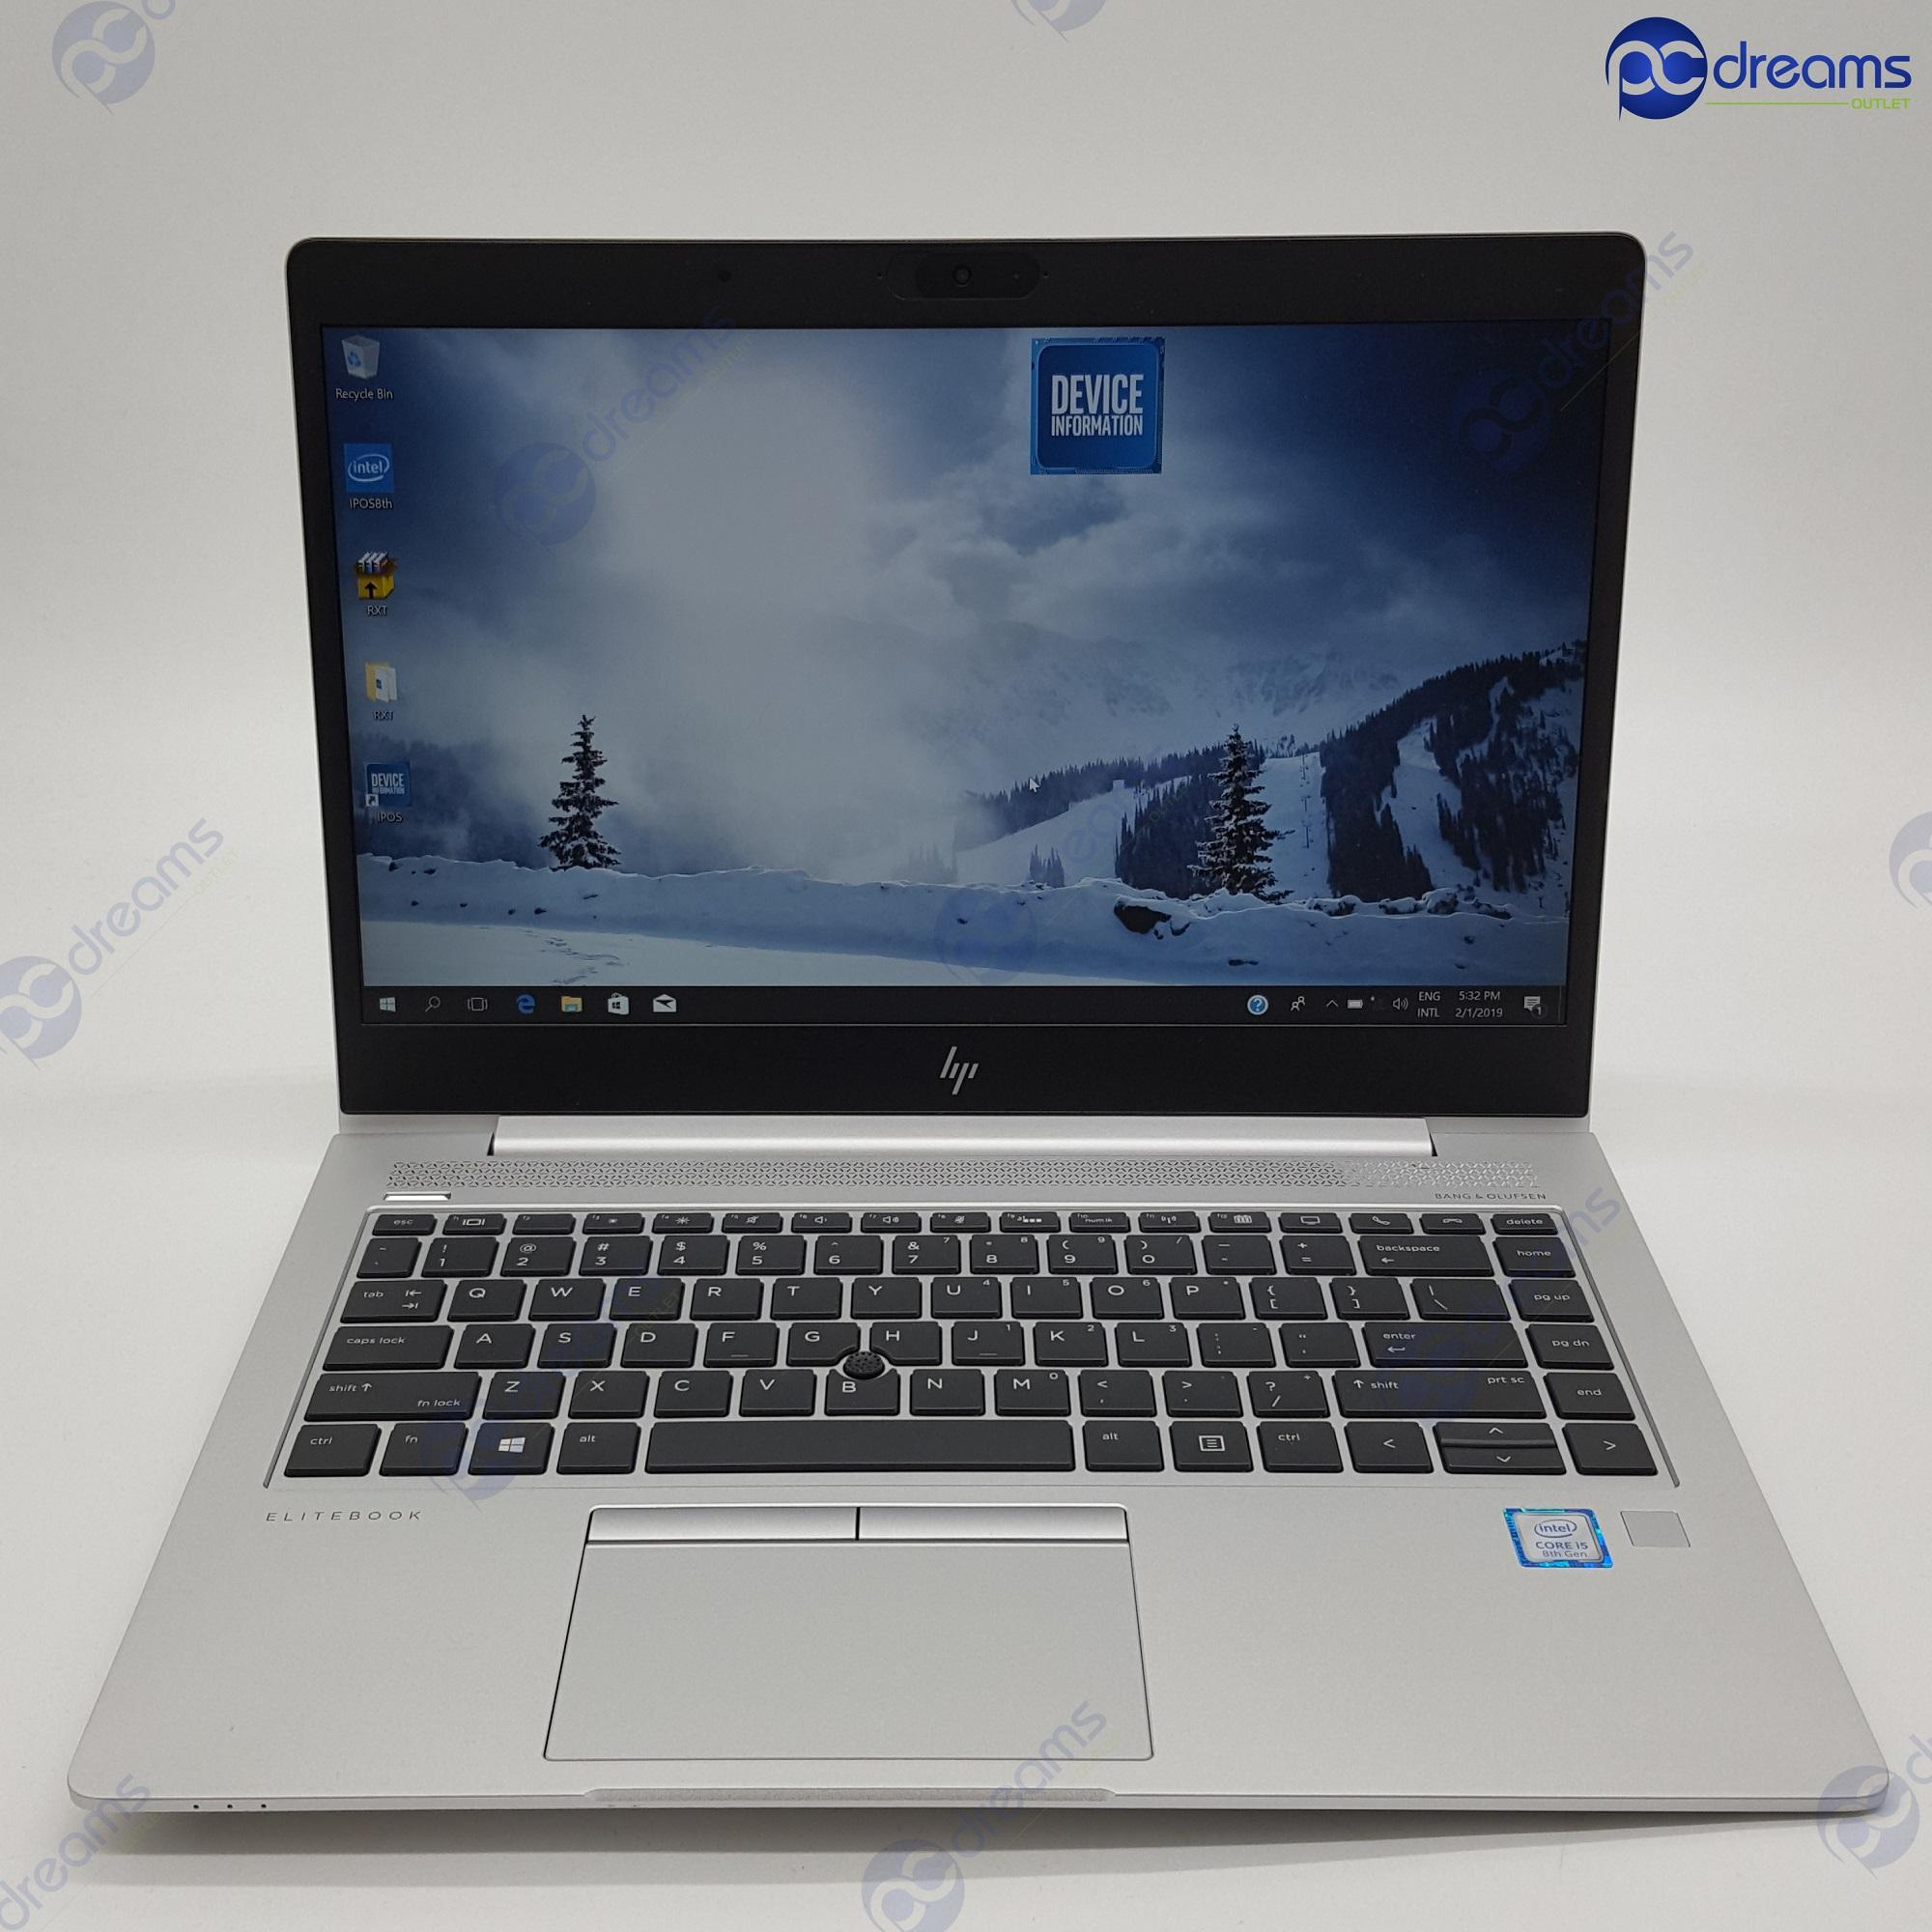 HP ELITEBOOK 840 G5 (2FA68AV) i7-8550U/16GB/512GB PCIE SSD/LTE [Premium Refreshed]